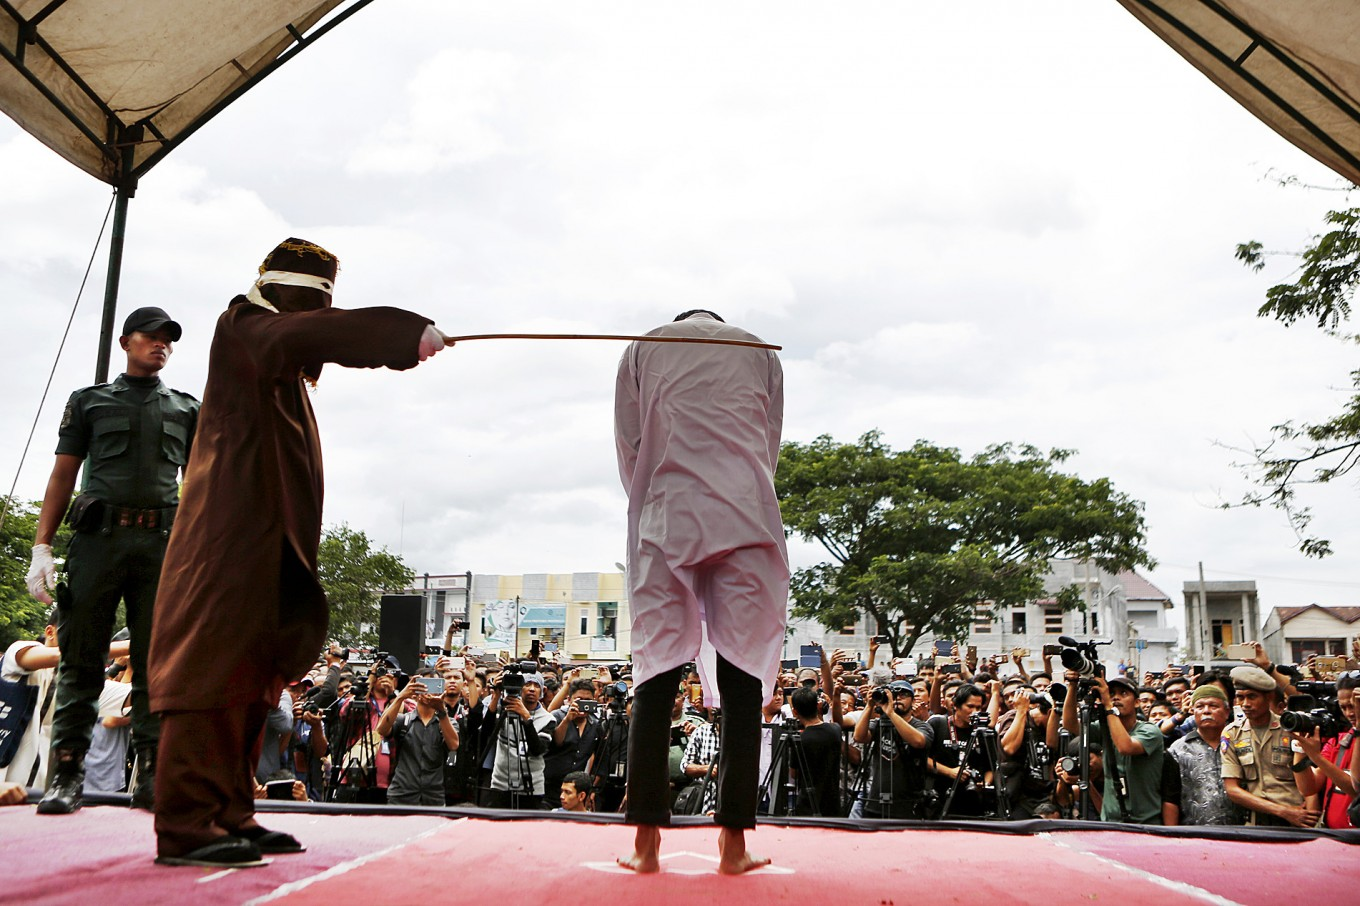 Flogging ended as punishment in Saudi Arabia